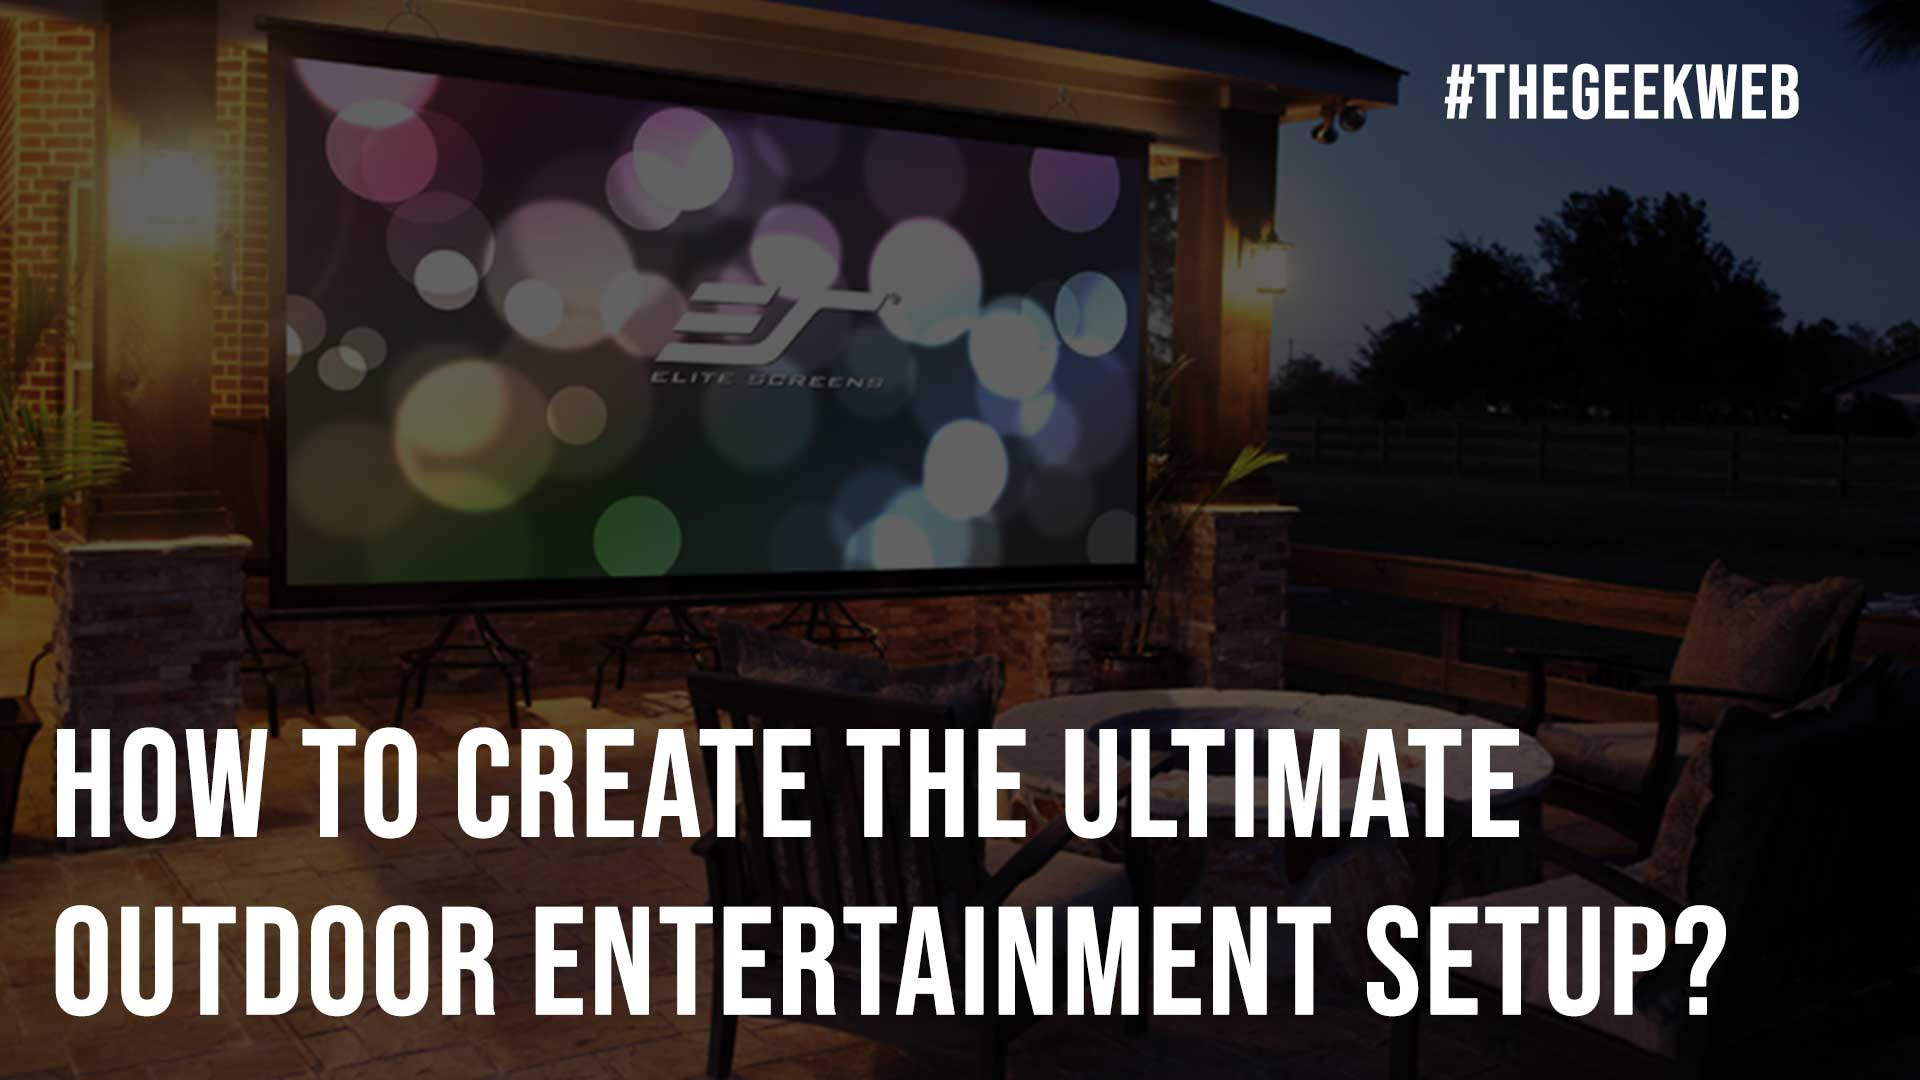 How to Create the Ultimate Outdoor Entertainment Setup?